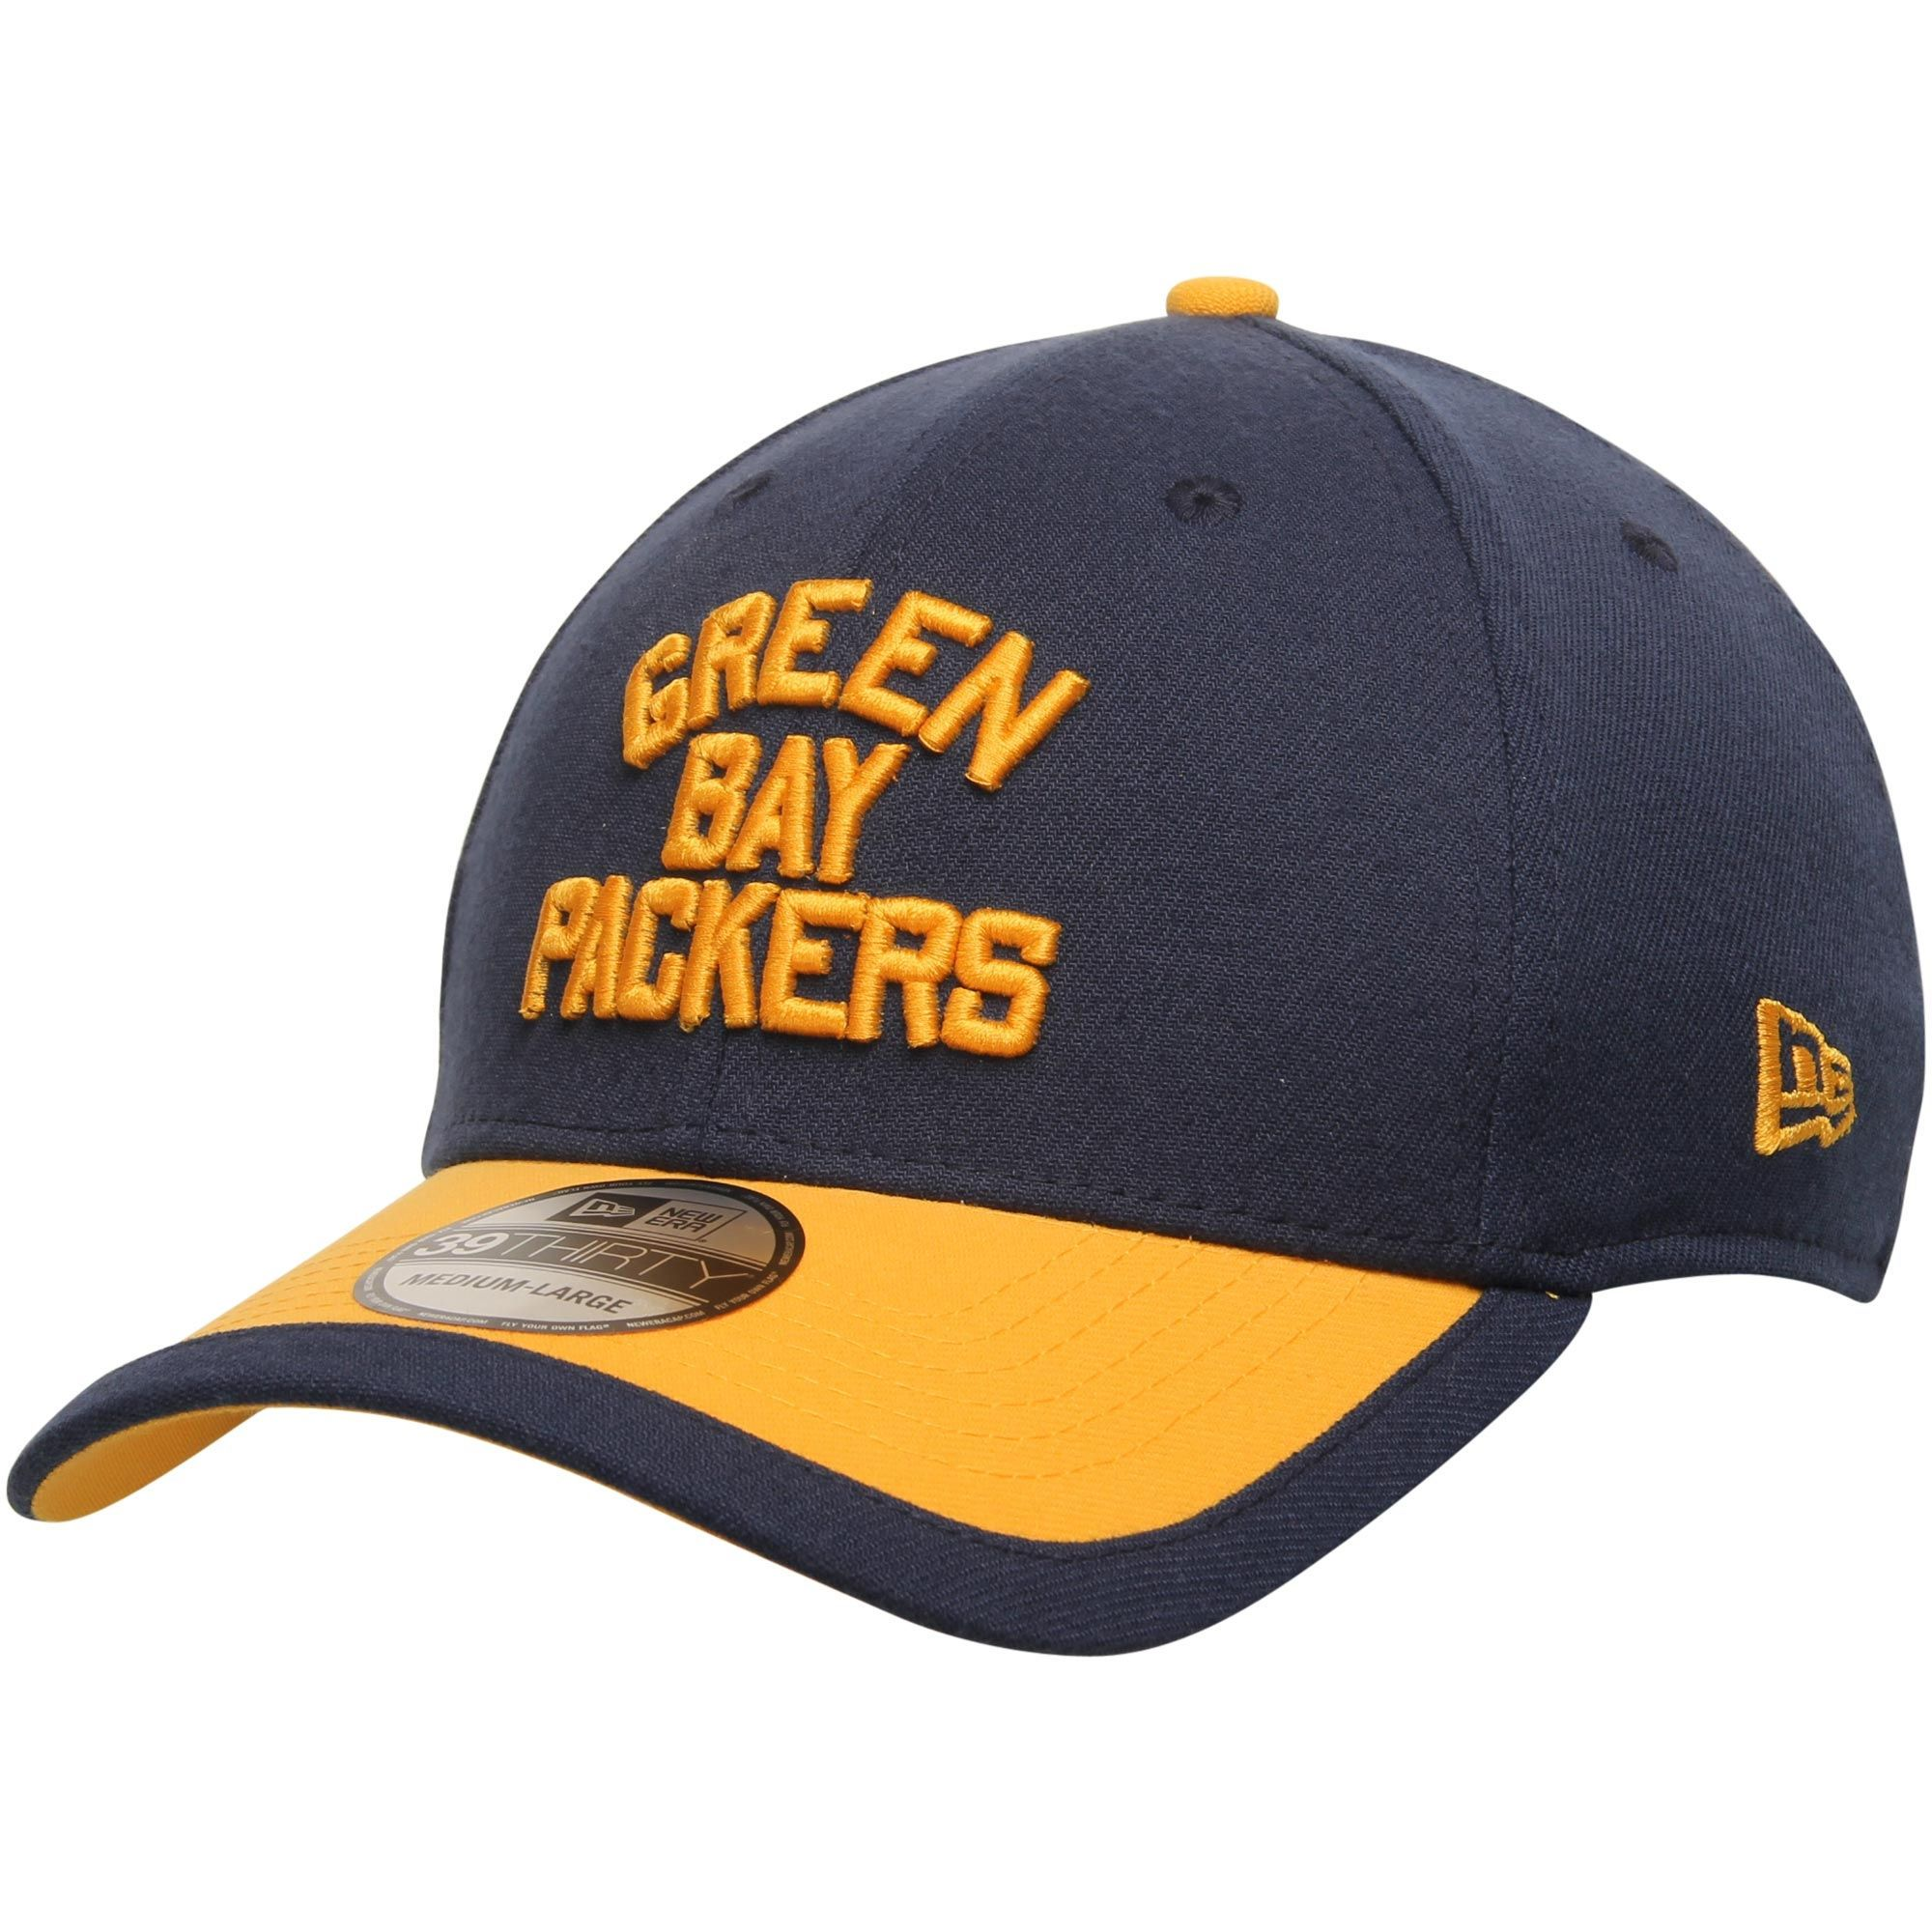 865996d58f2 Men s Green Bay Packers New Era Navy Gold Sideline Classic 39THIRTY Flex Hat